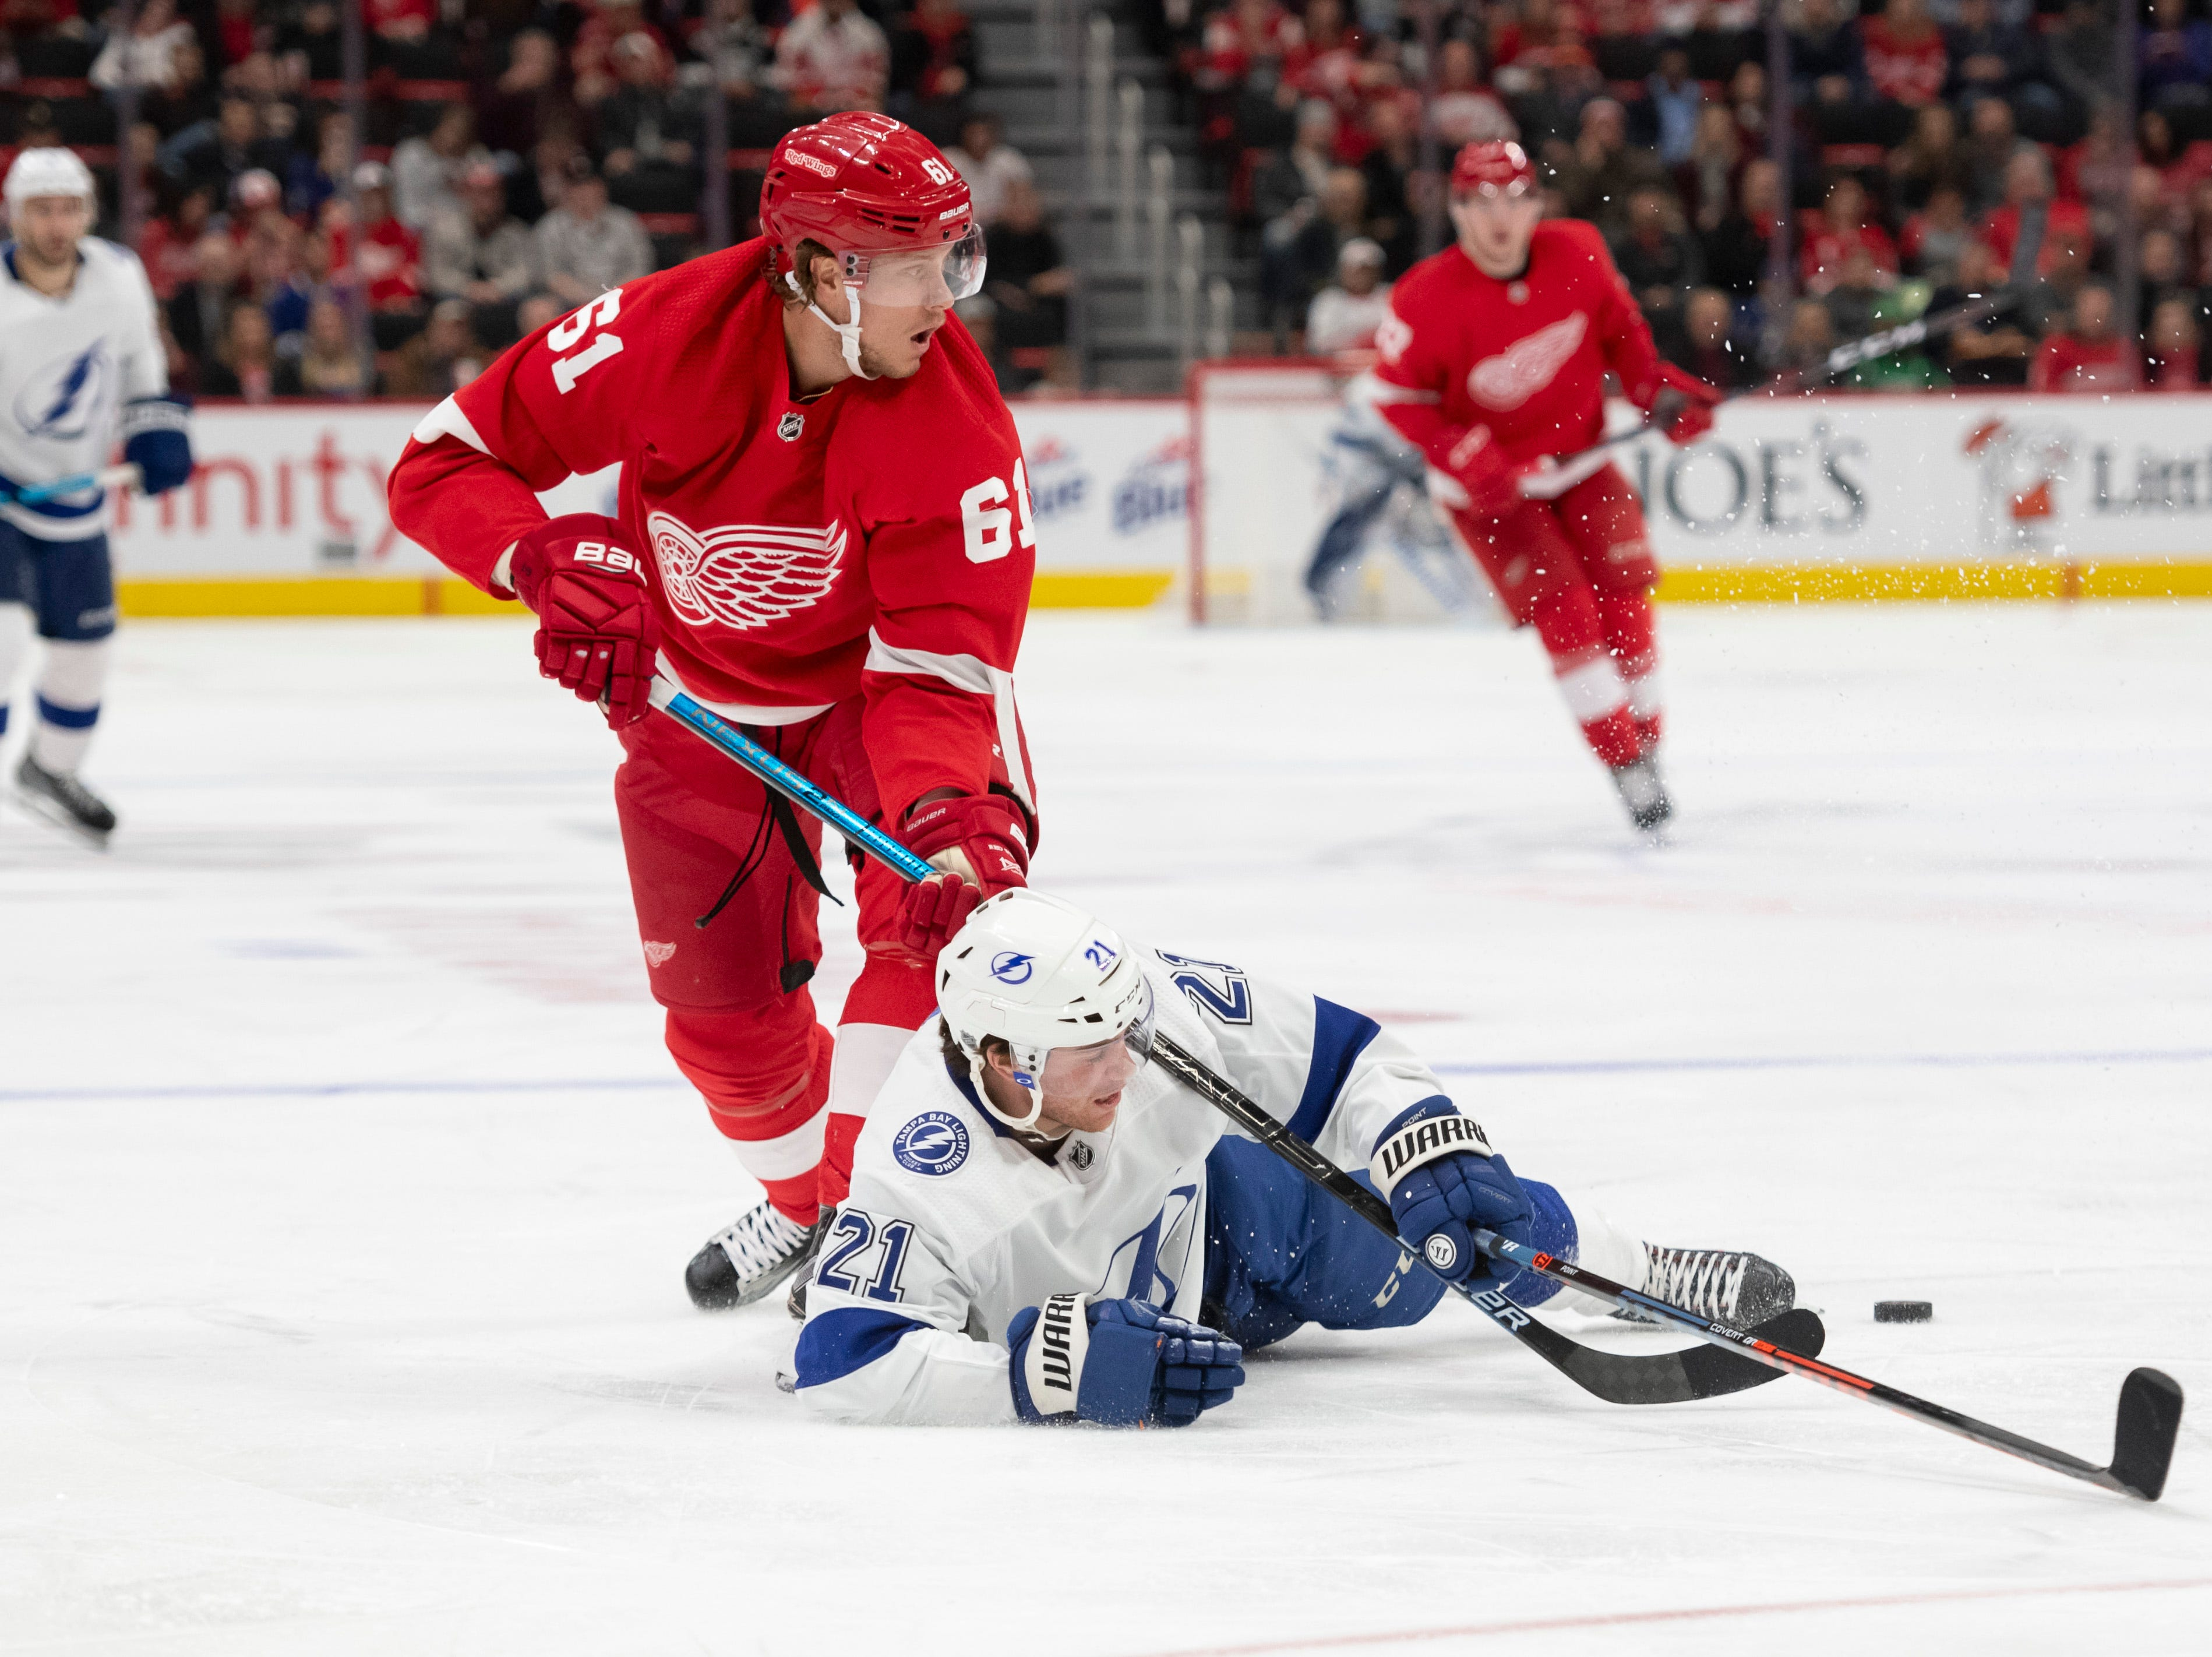 Detroit left wing Jacob De La Rose and Tampa Bay center Brayden Point get tangled up while battling for the puck in the second period.